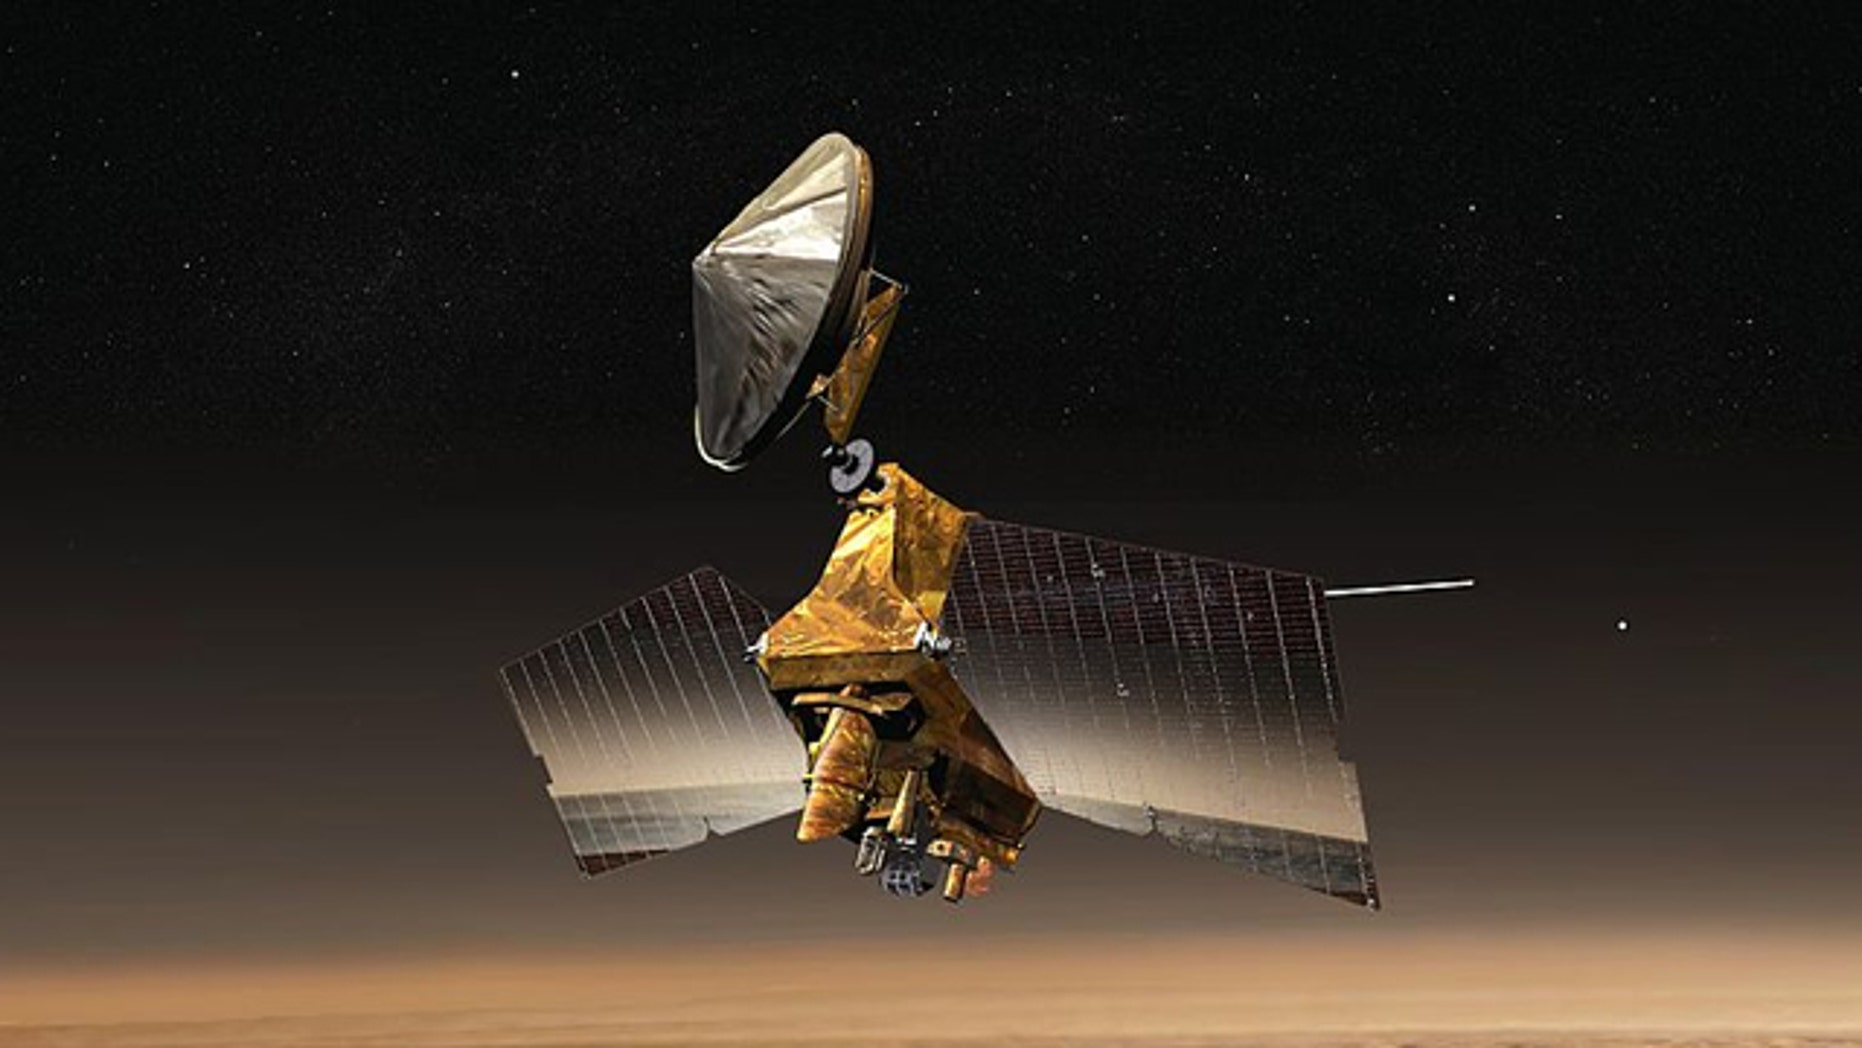 The Mars Reconnaissance Orbiter has made a significant discovery, according to NASA.